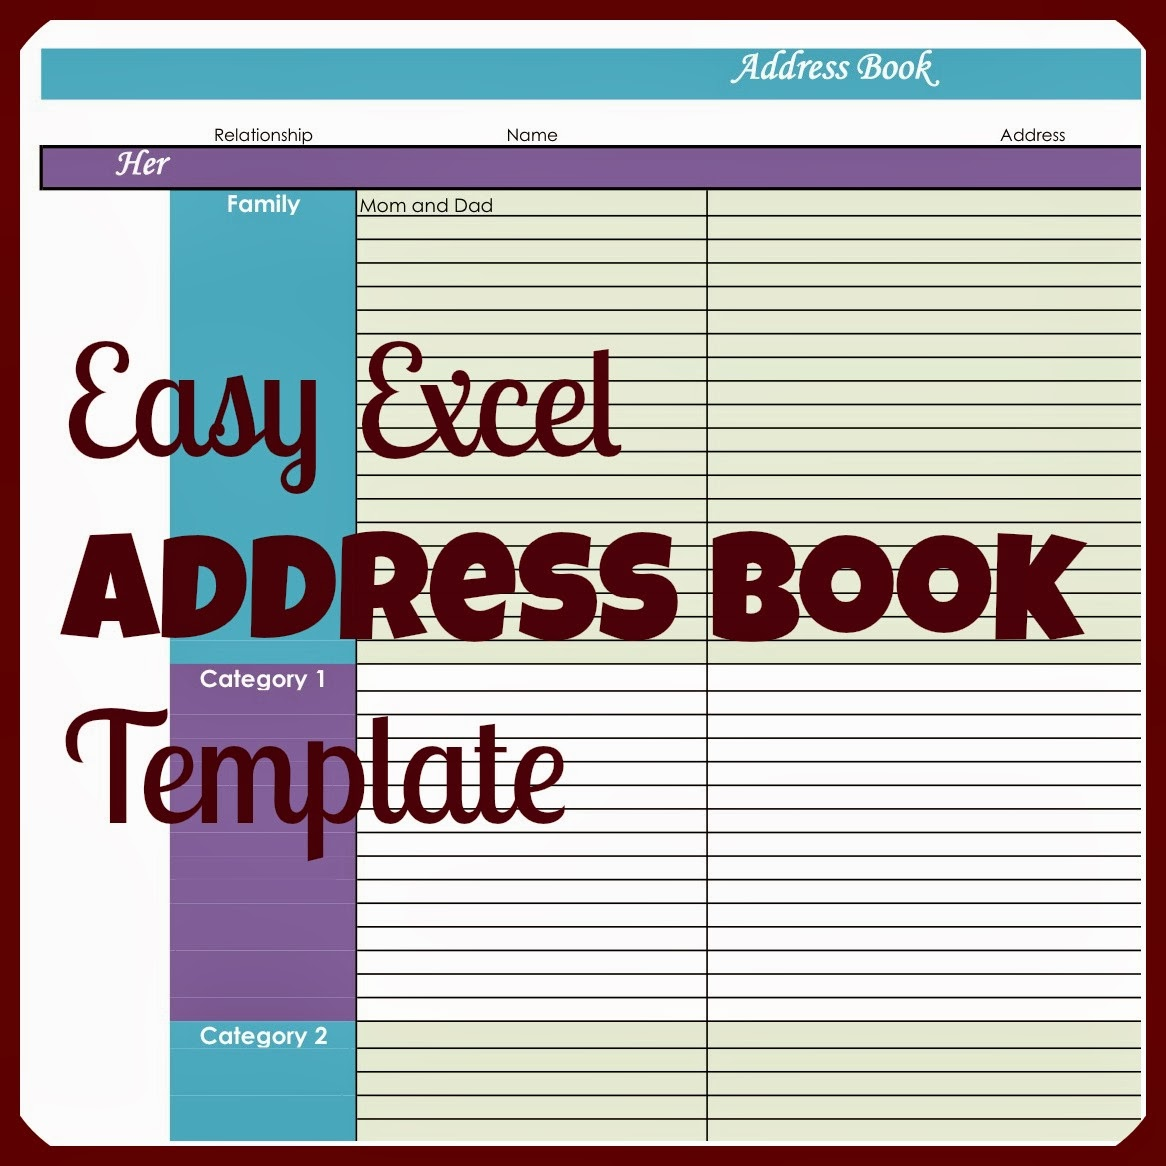 Easy Excel Address Book Template  Contact List Excel Template